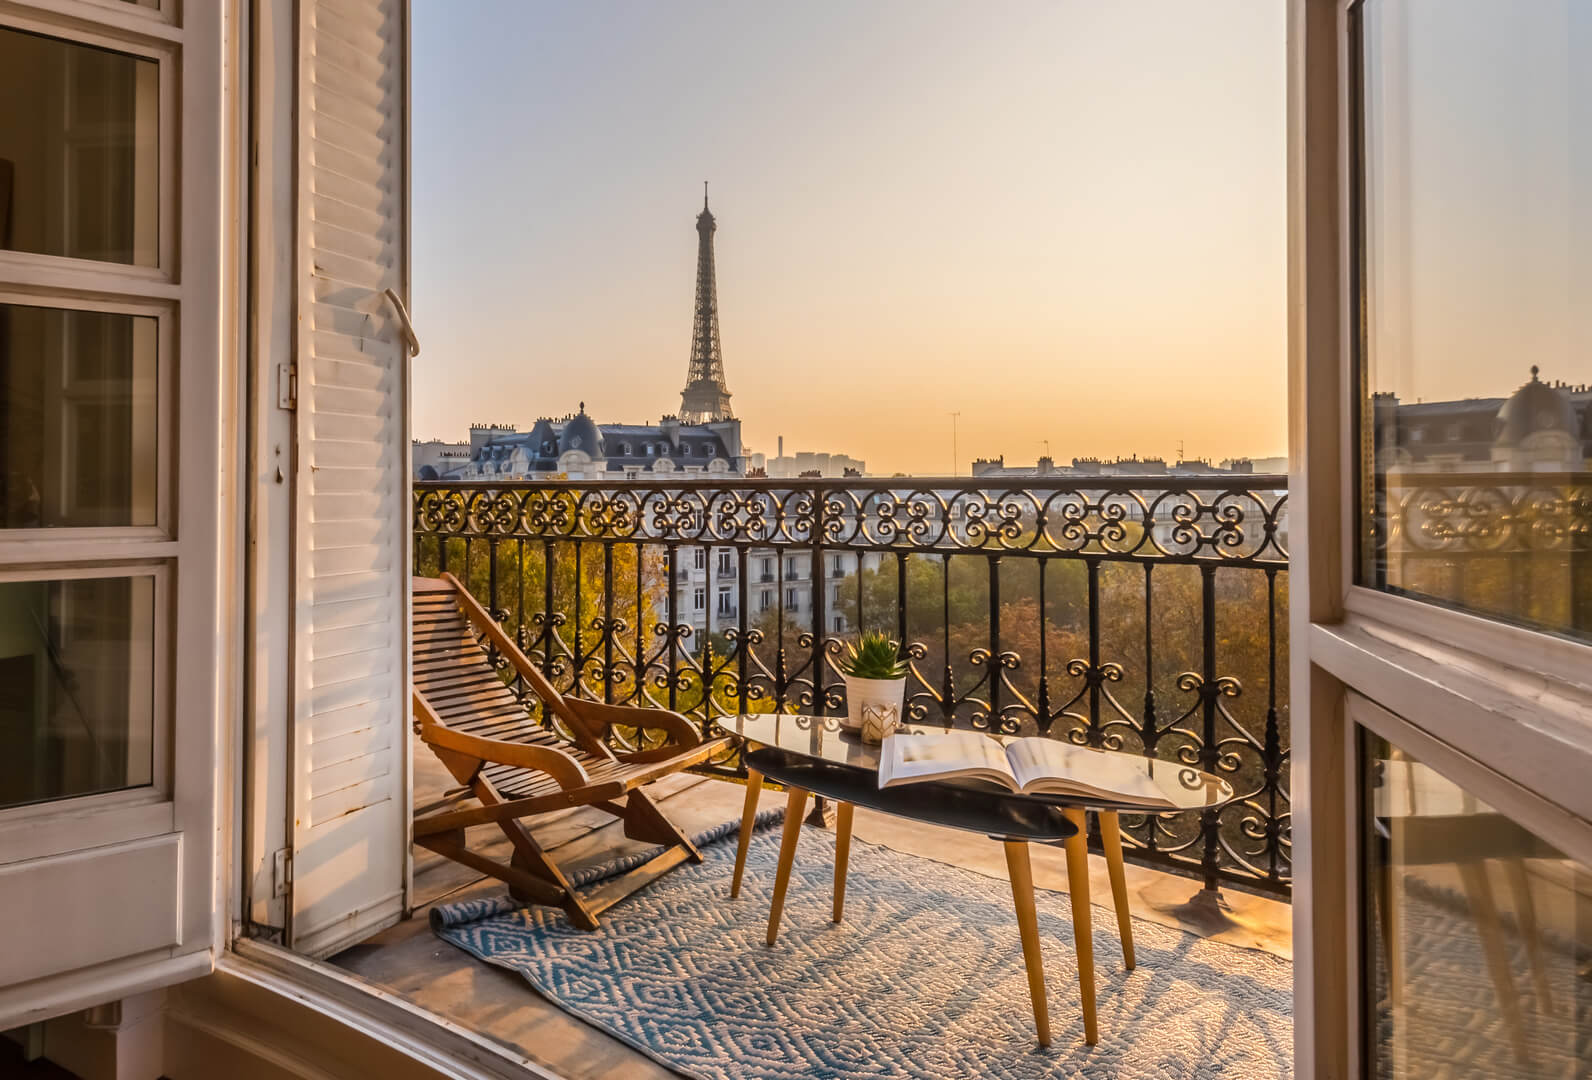 paris balcony with a splendid view of the eiffel tower at sunset